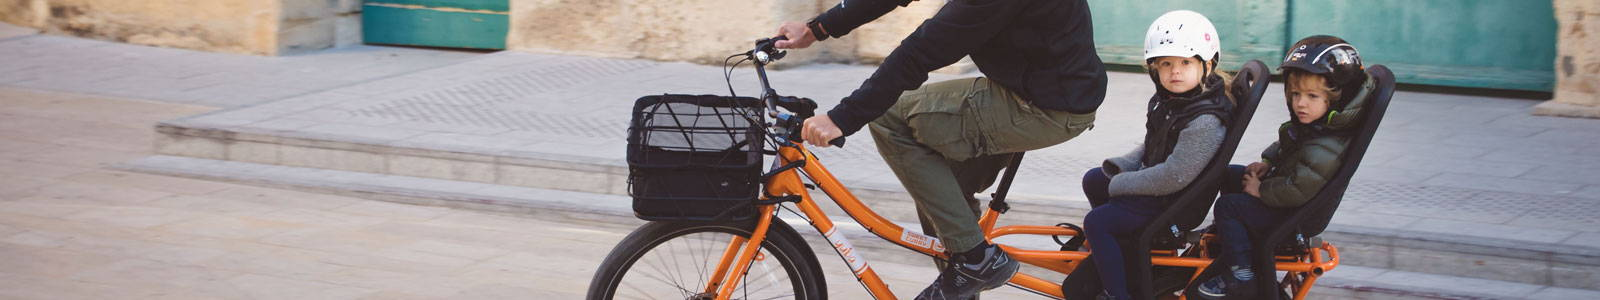 Yuba bikes has the best cargo bikes for the family.